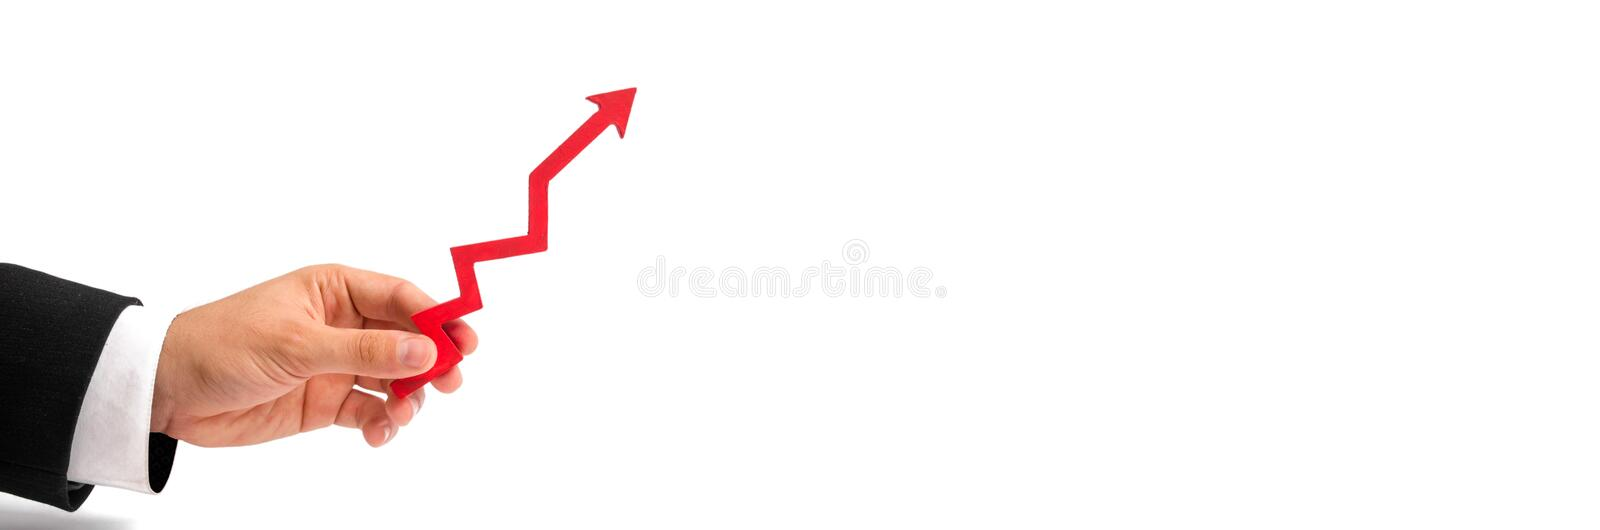 A businessman`s hand holds a red arrow up on a white background. The concept of raising and multiplying income and profits, risin royalty free stock photo